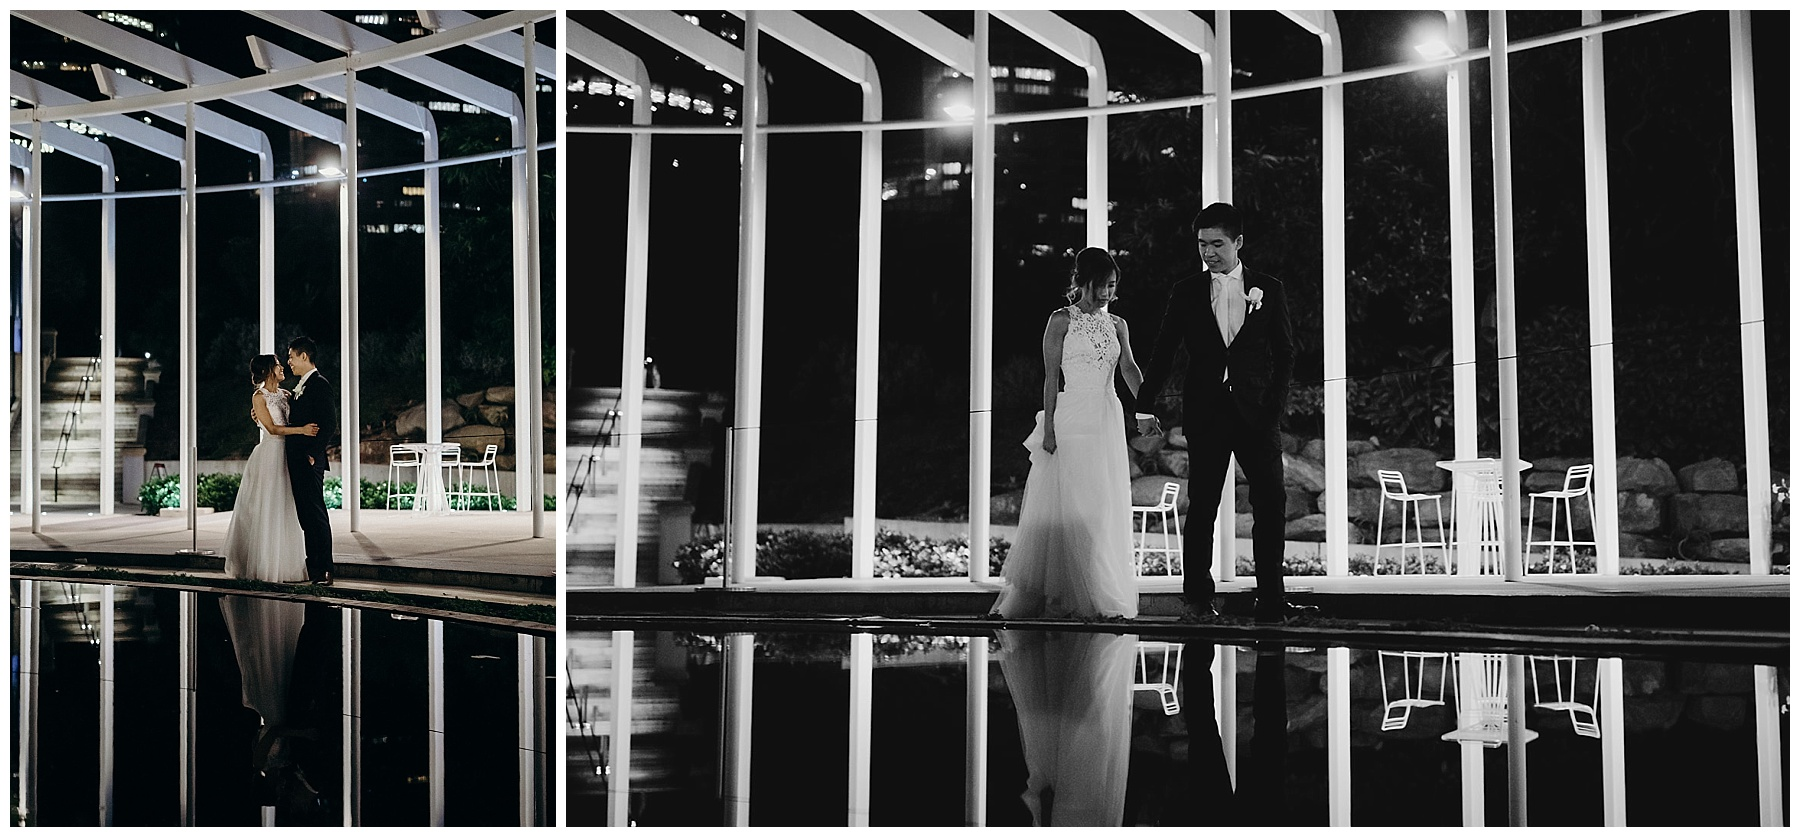 Evening Bride and Groom photography